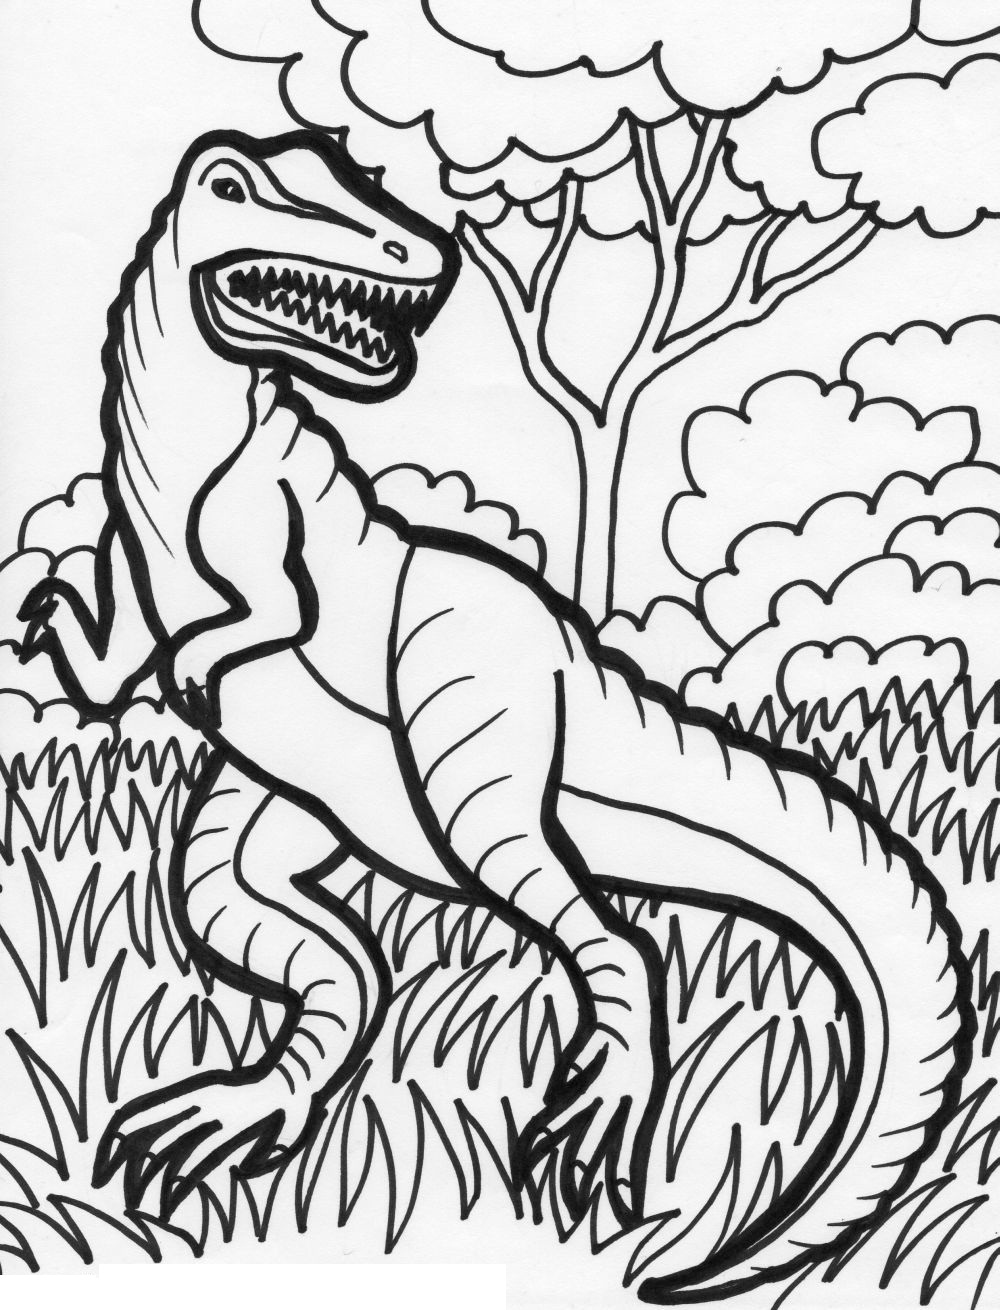 dino coloring pages - Vatoz.atozdevelopment.co